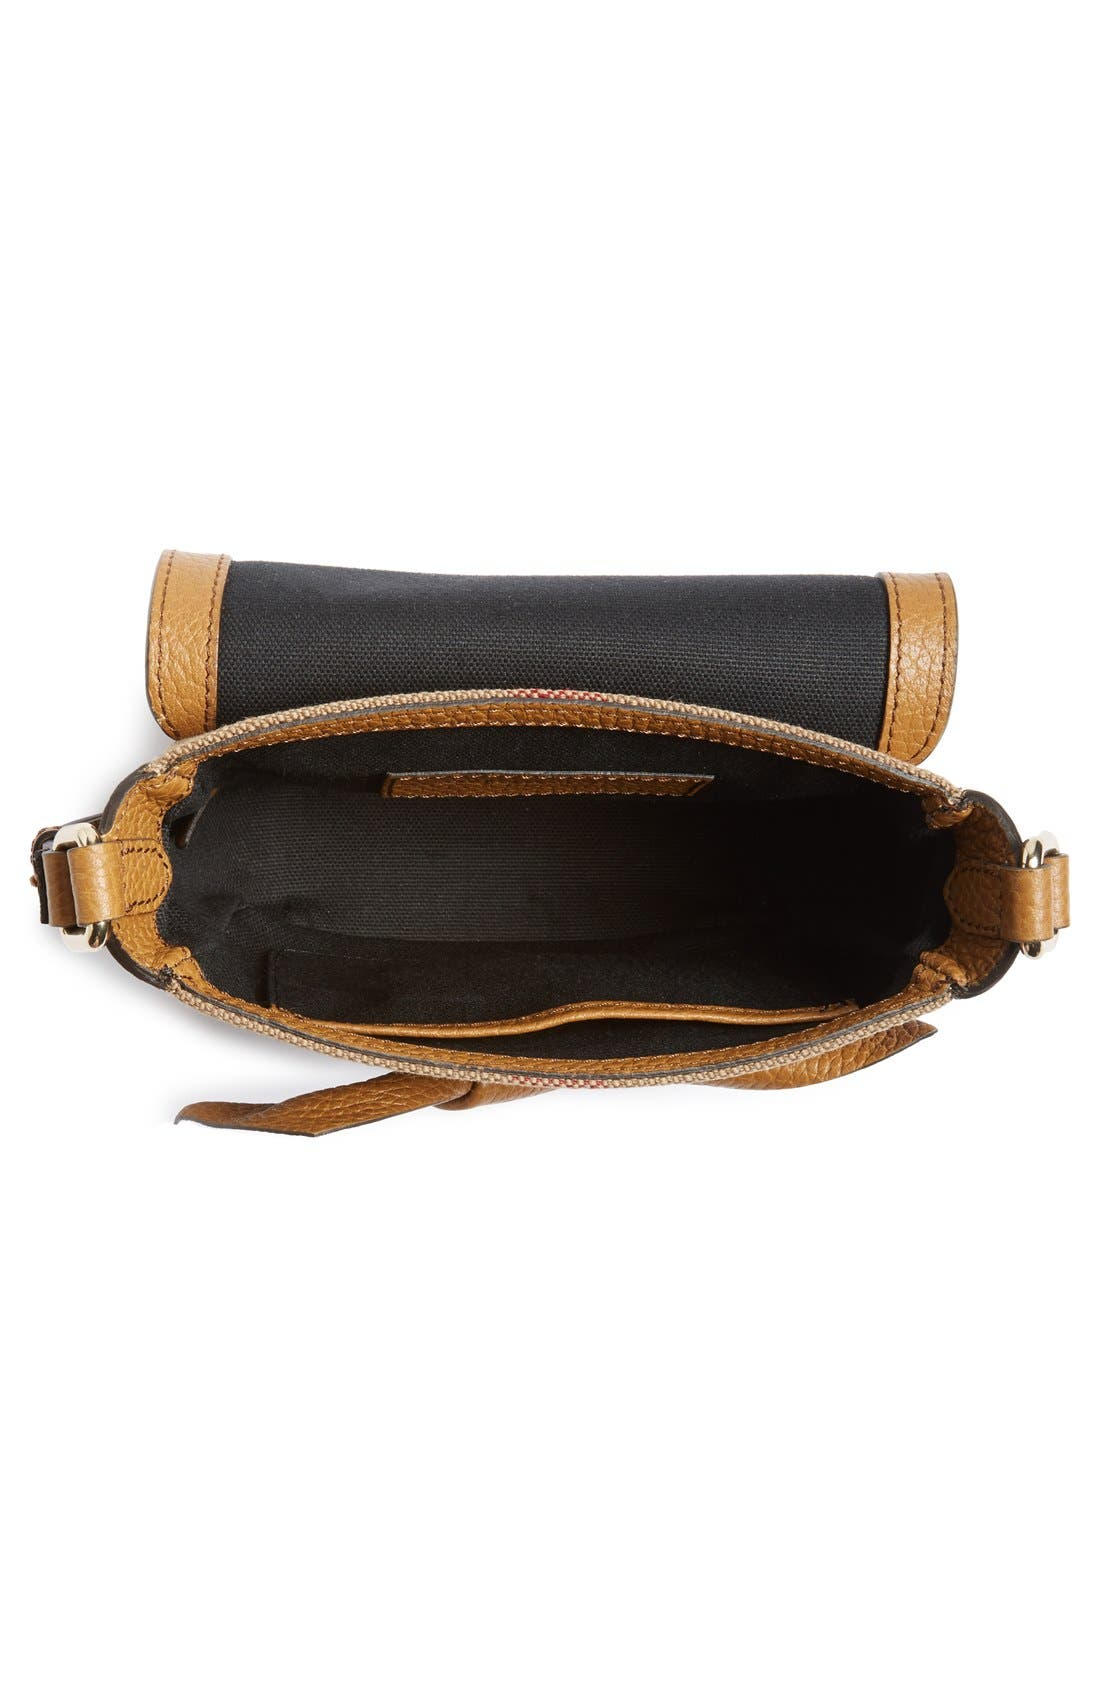 BURBERRY,                             Canvas Check & Leather Crossbody Bag,                             Alternate thumbnail 3, color,                             251